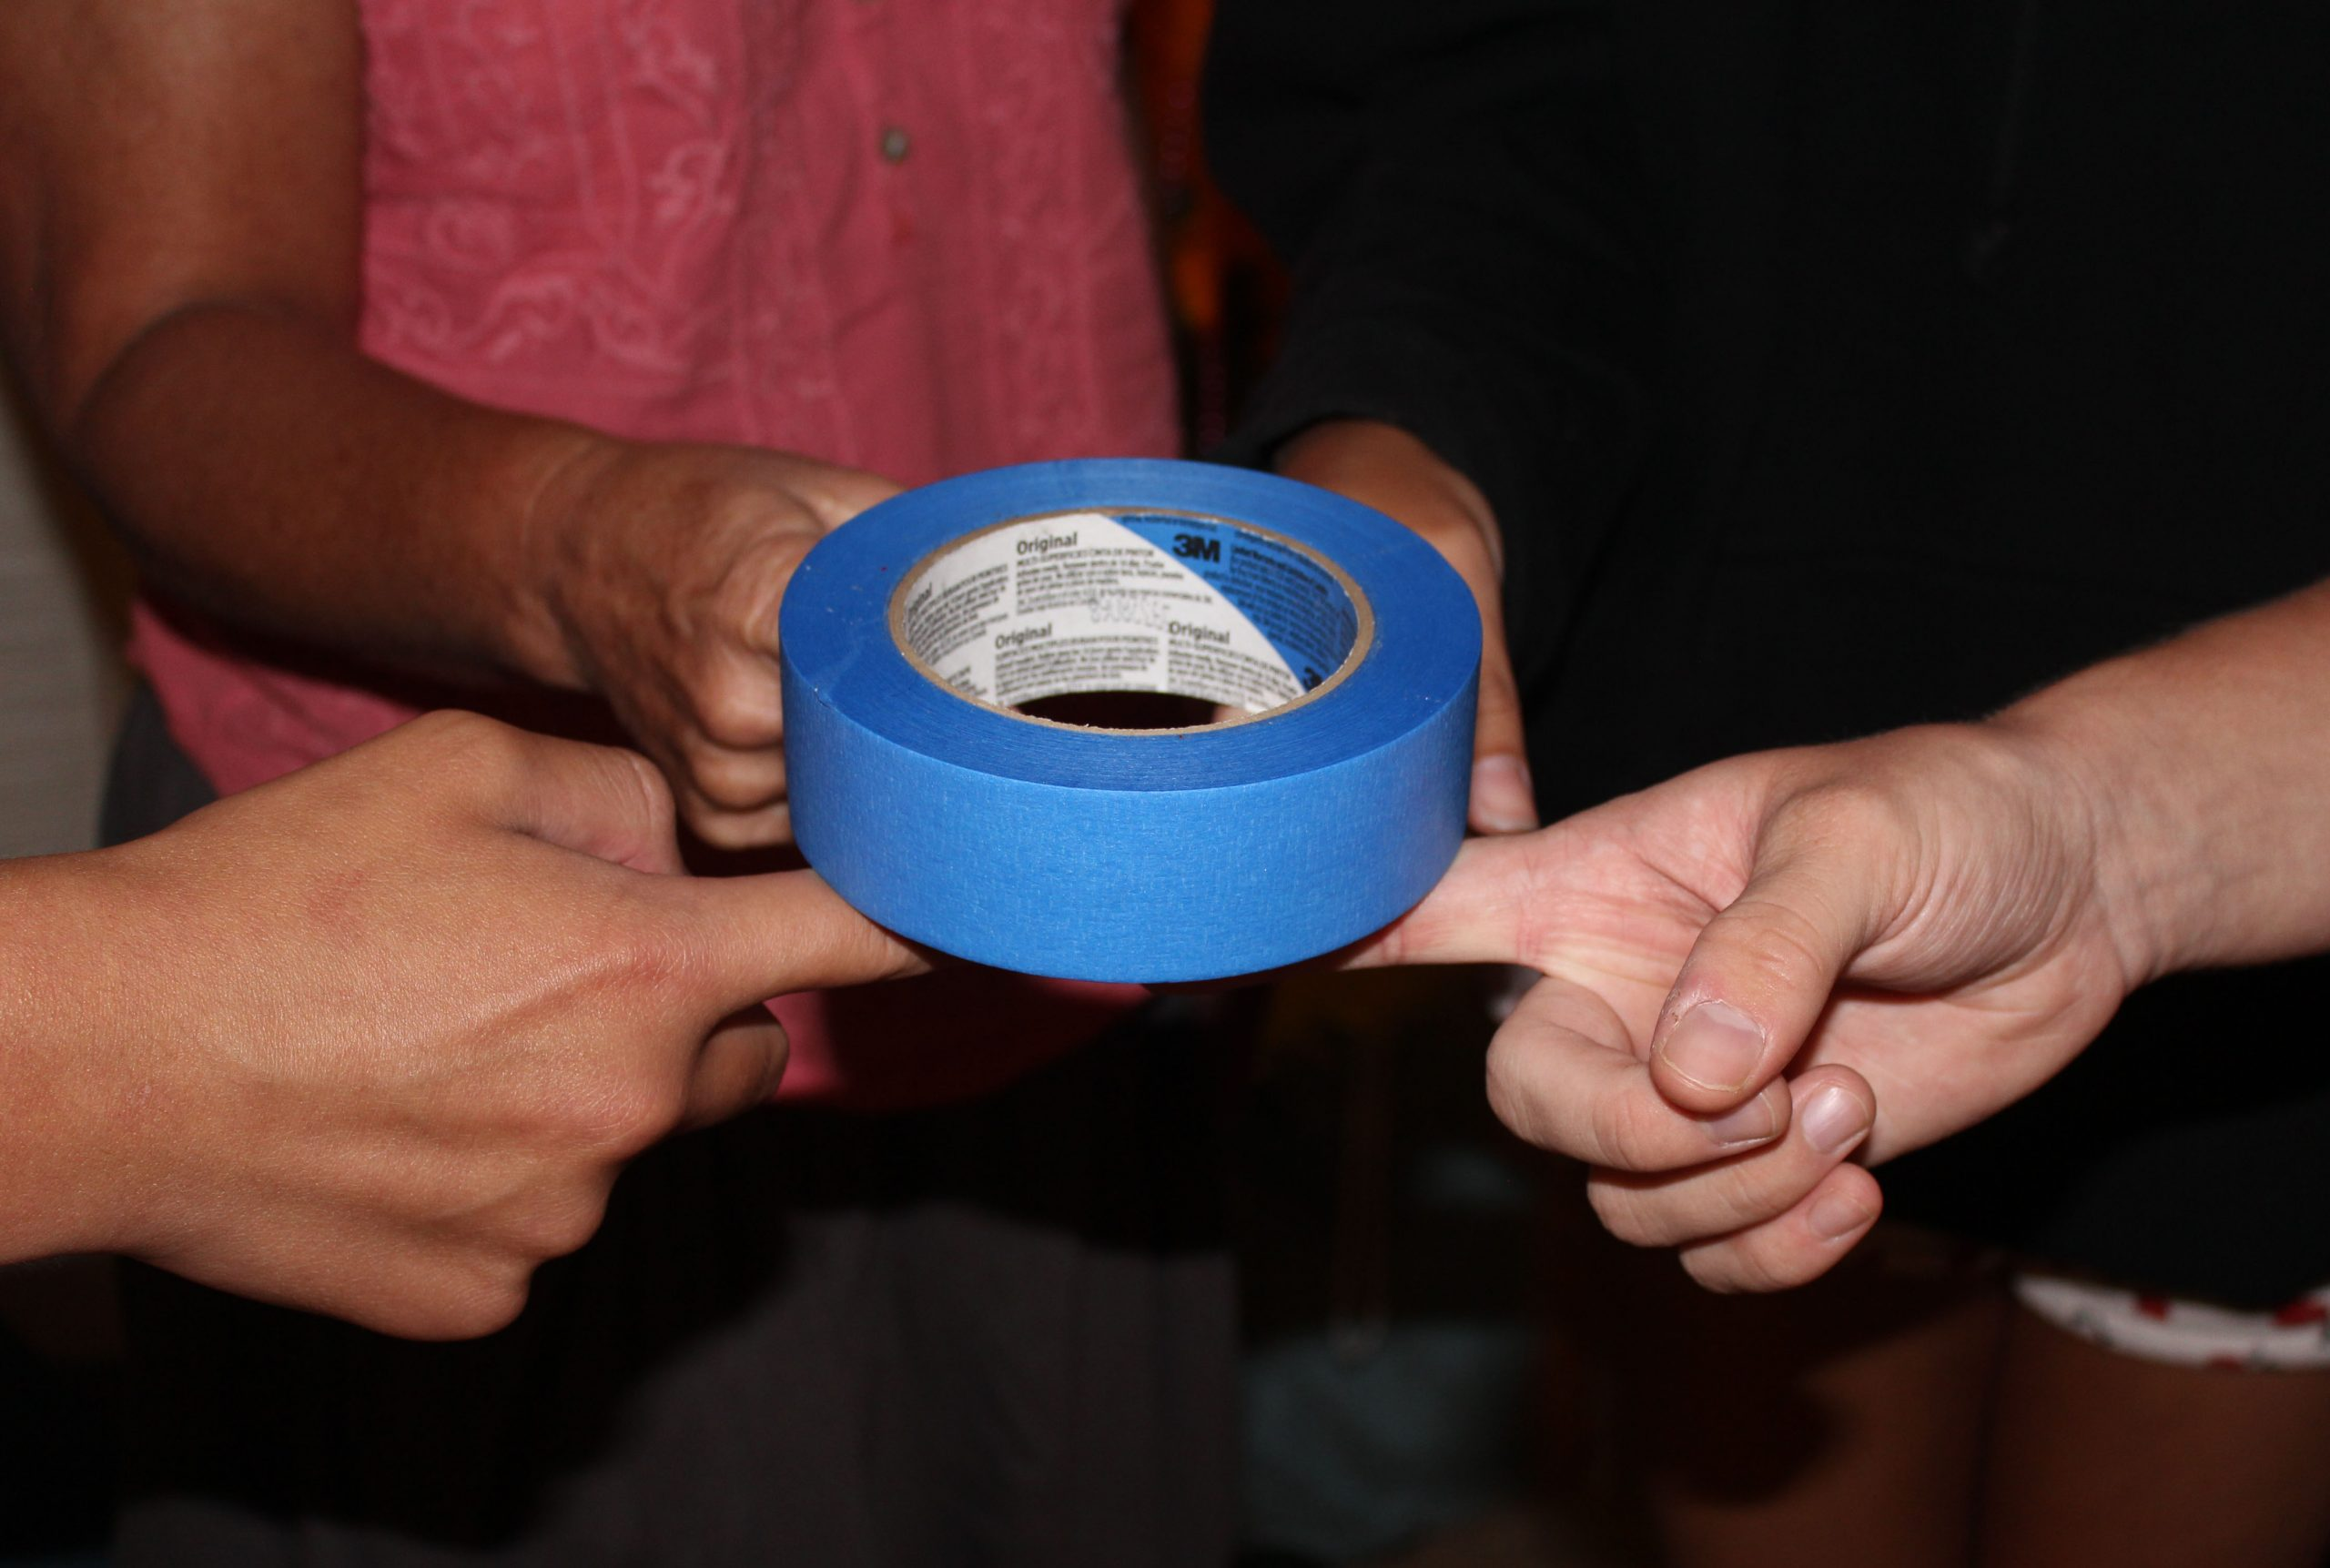 Players holding the roll of tape with their fingers